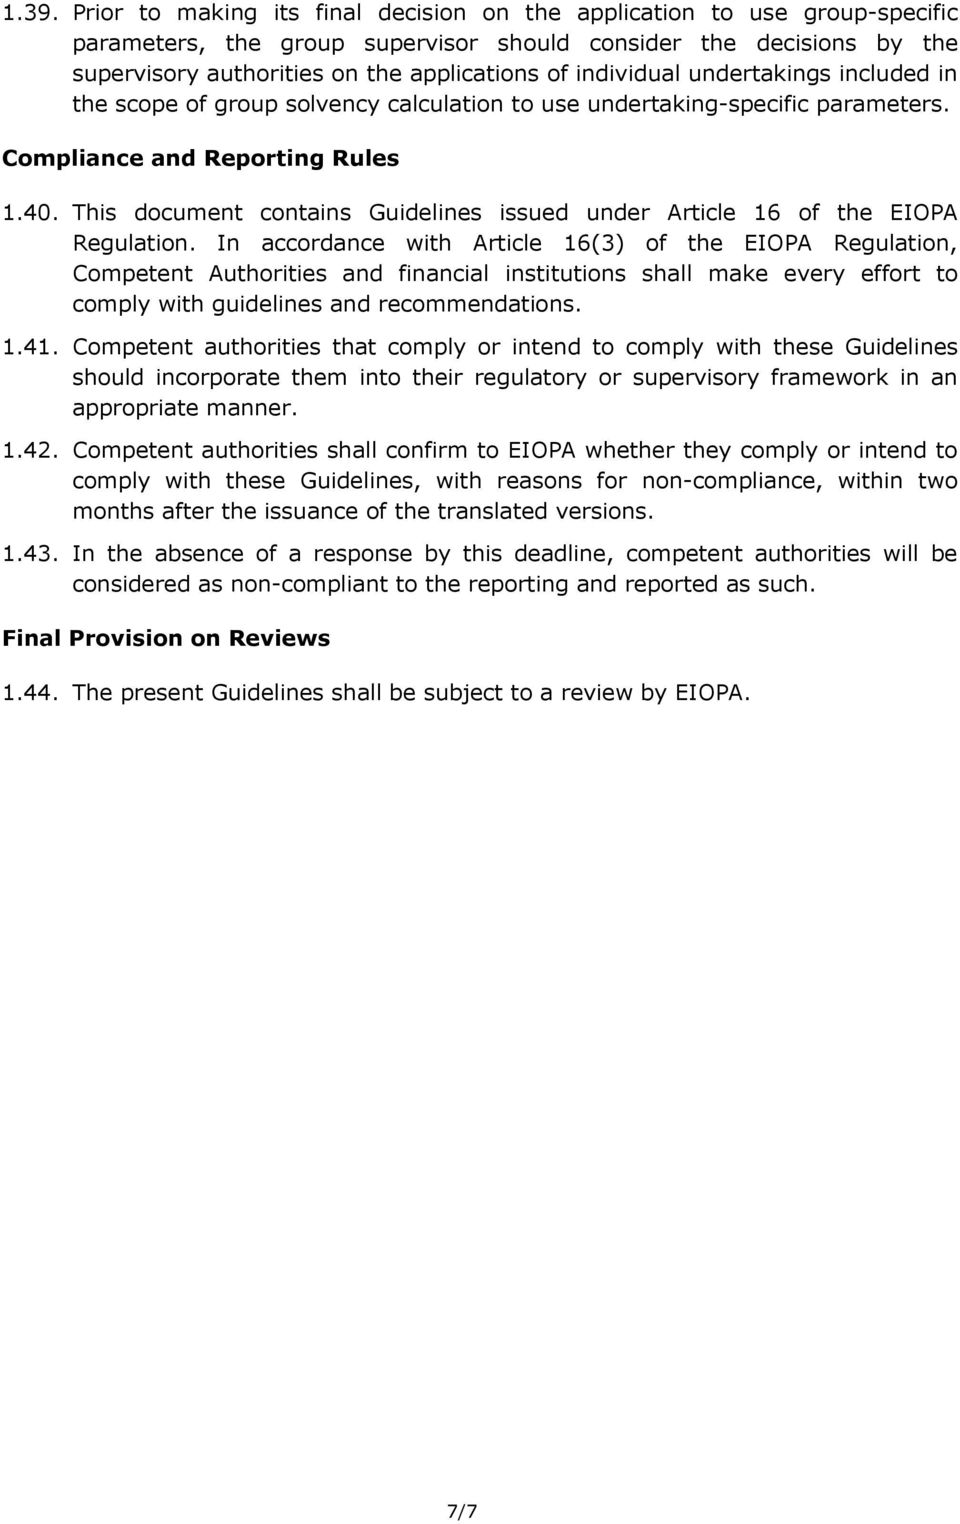 This document contains Guidelines issued under Article 16 of the EIOPA Regulation.